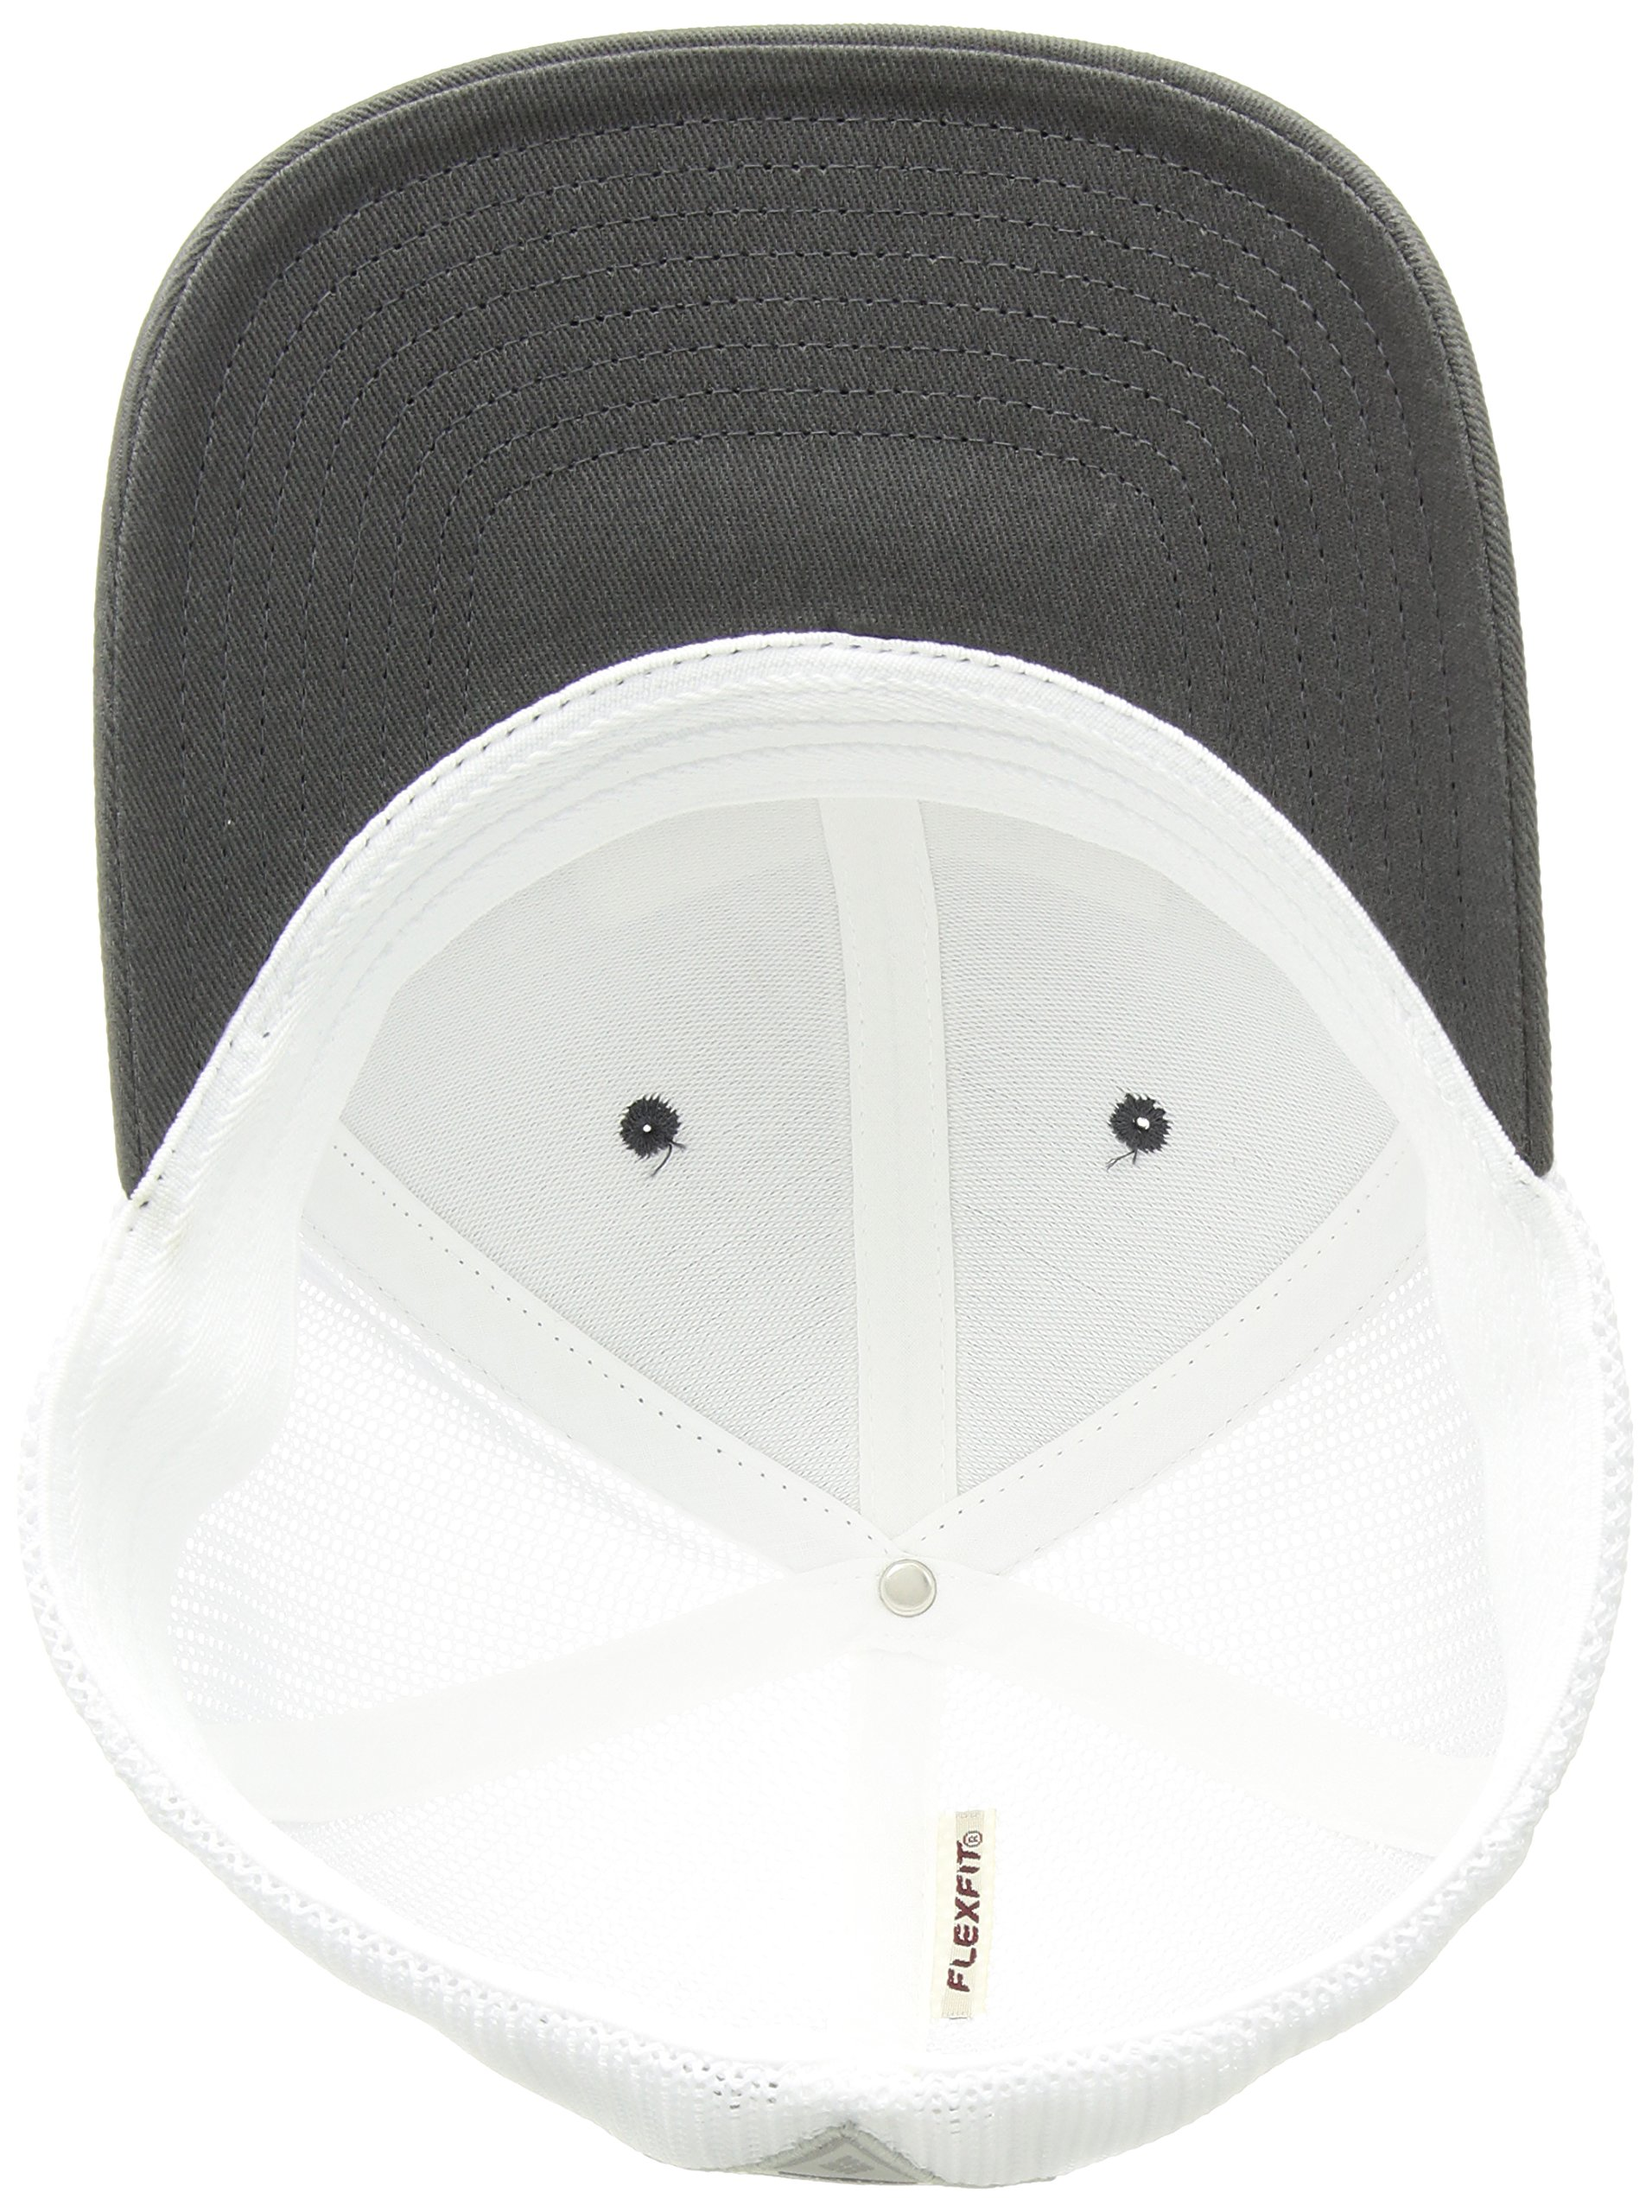 Columbia PFG Mesh Ball Cap, Grill Fish Trio, Large/X-Large by Columbia (Image #3)